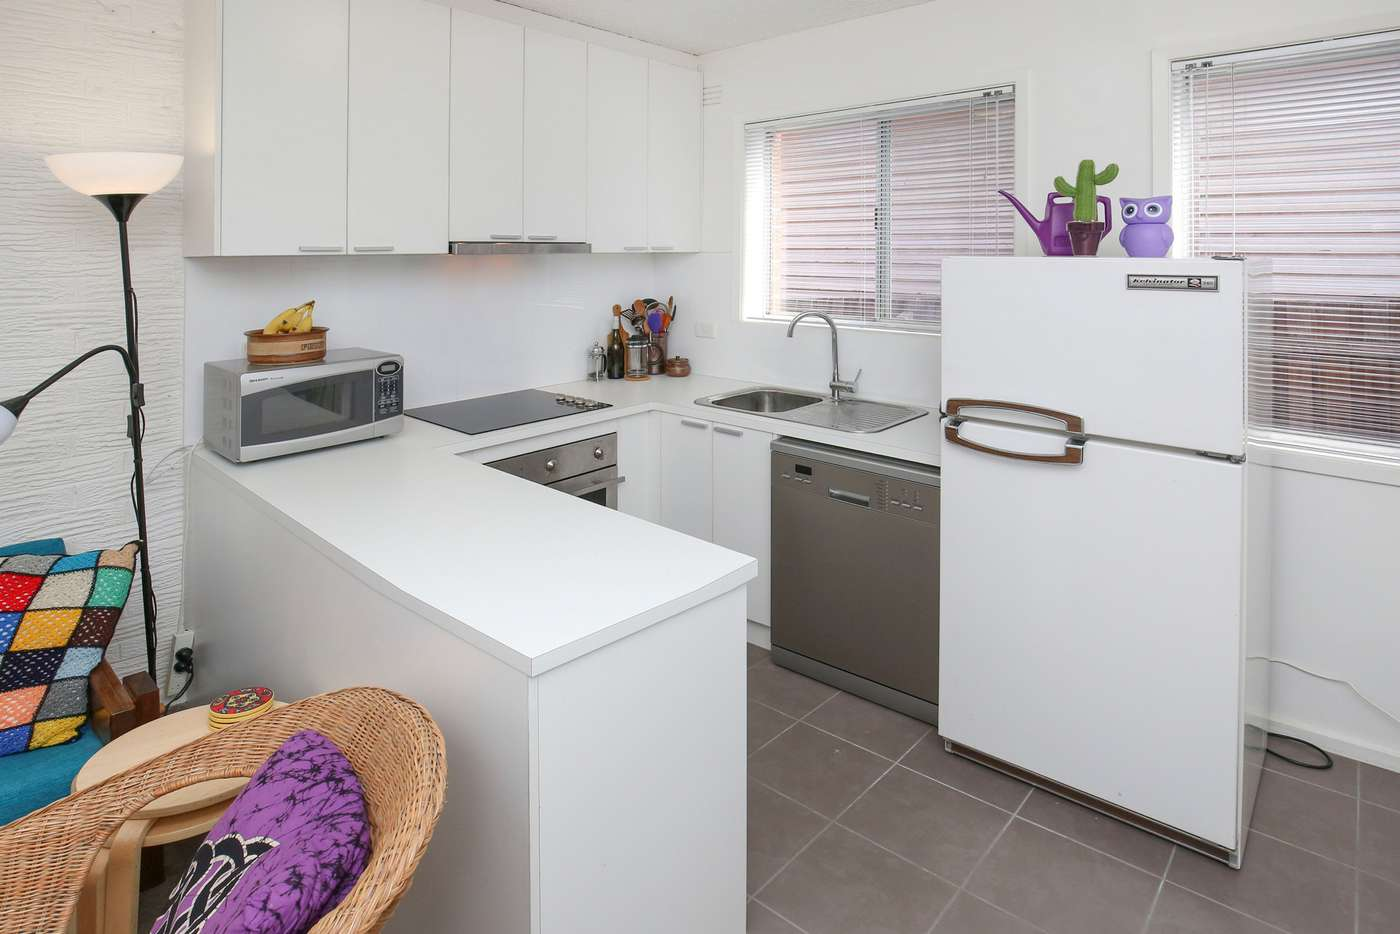 Fifth view of Homely apartment listing, 6/62 Dundas Street, Thornbury VIC 3071